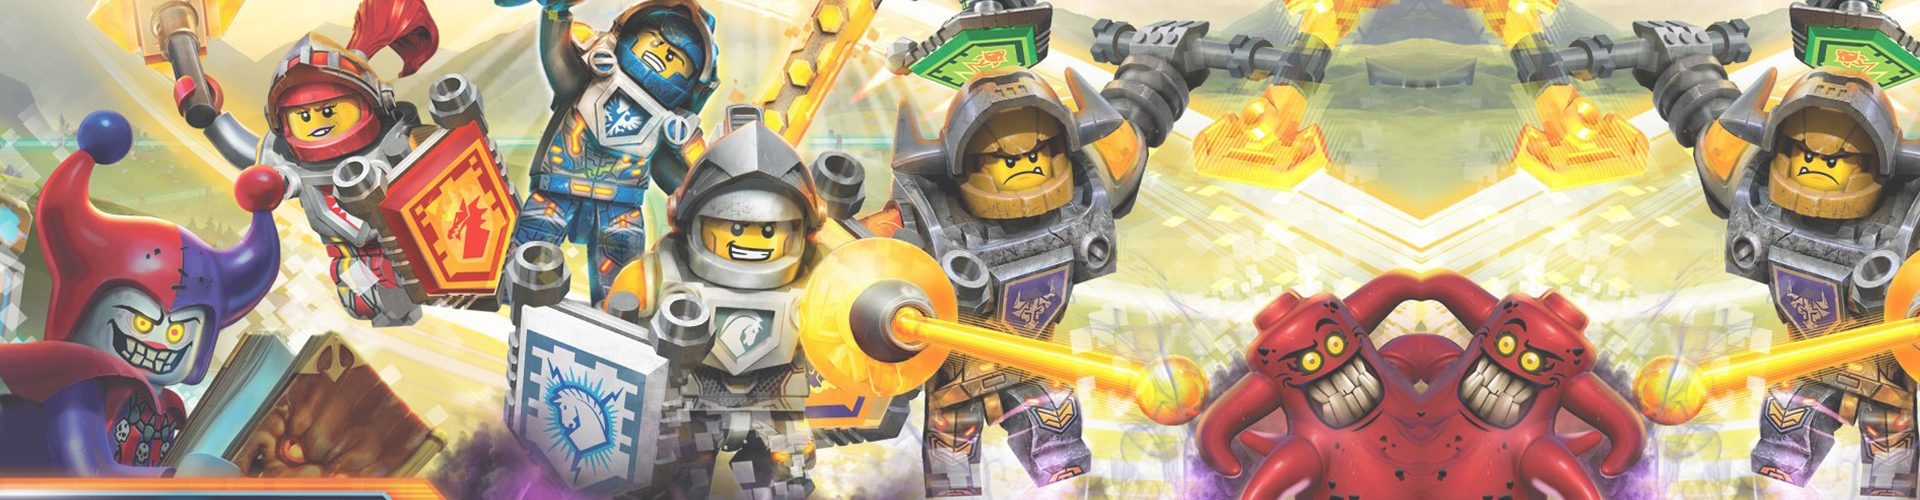 Lego Nexo Knights 4D: The Book of Creativity